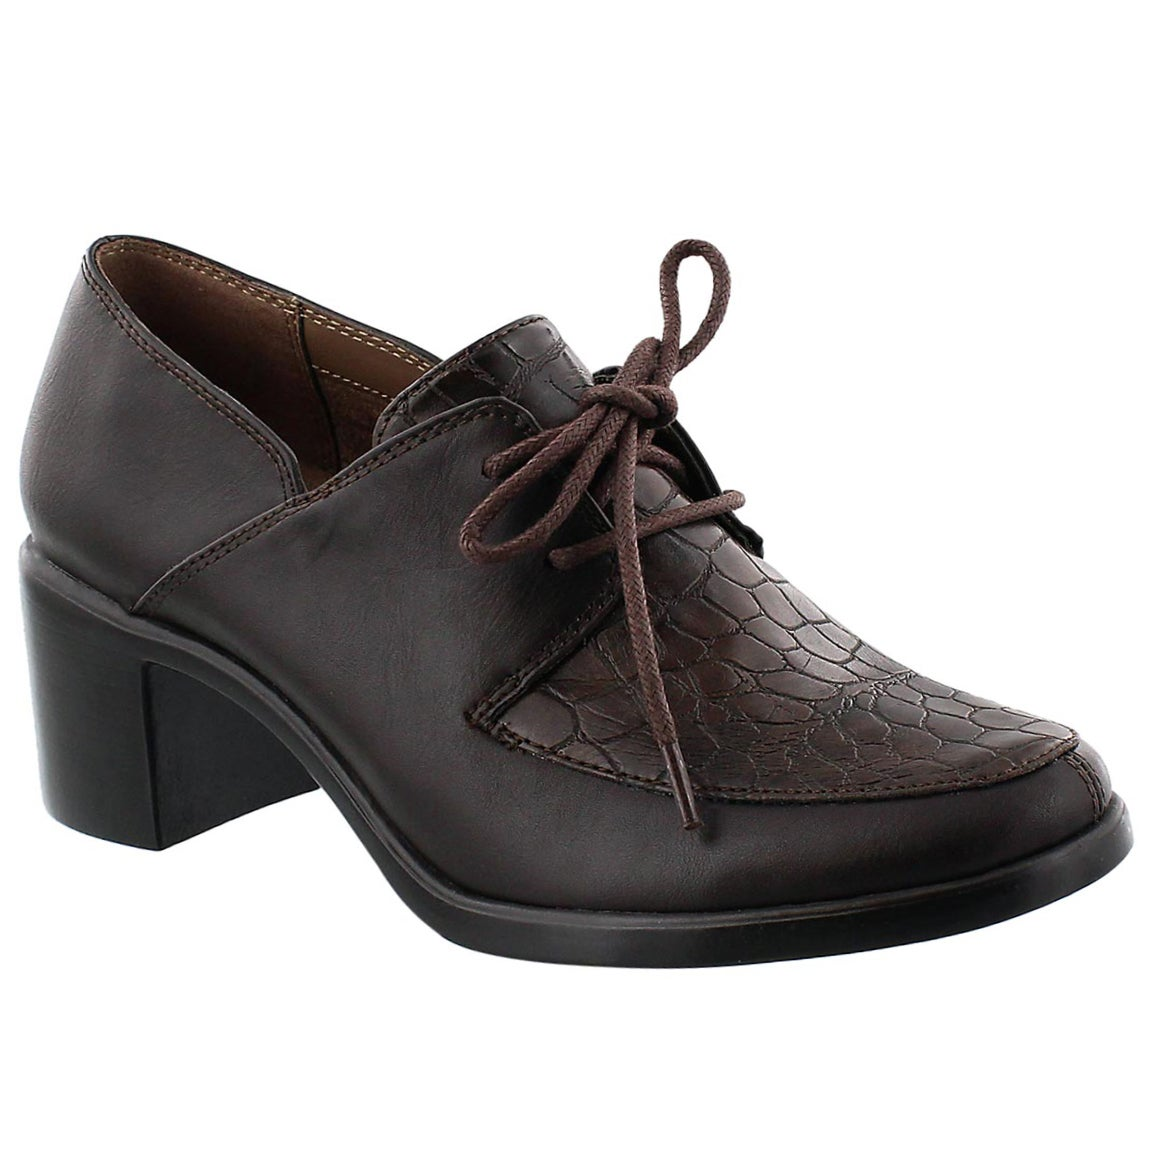 Lds Endearing brown lace-up dress heel